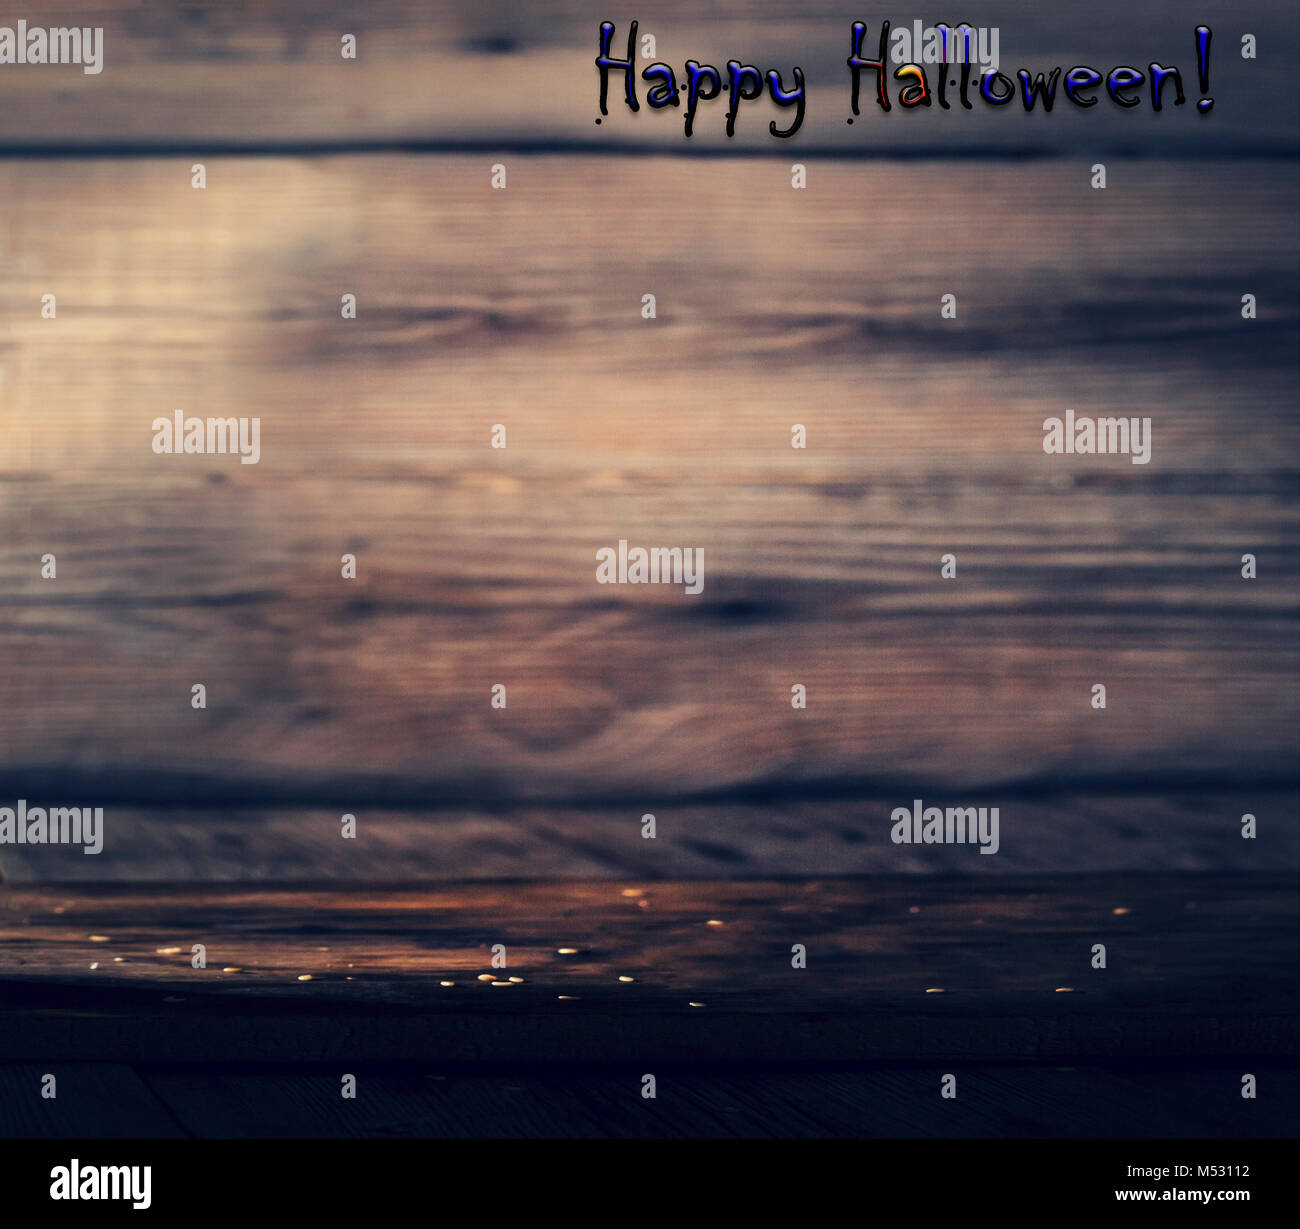 Mystical twilight of the brewery. Halloween. - Stock Image